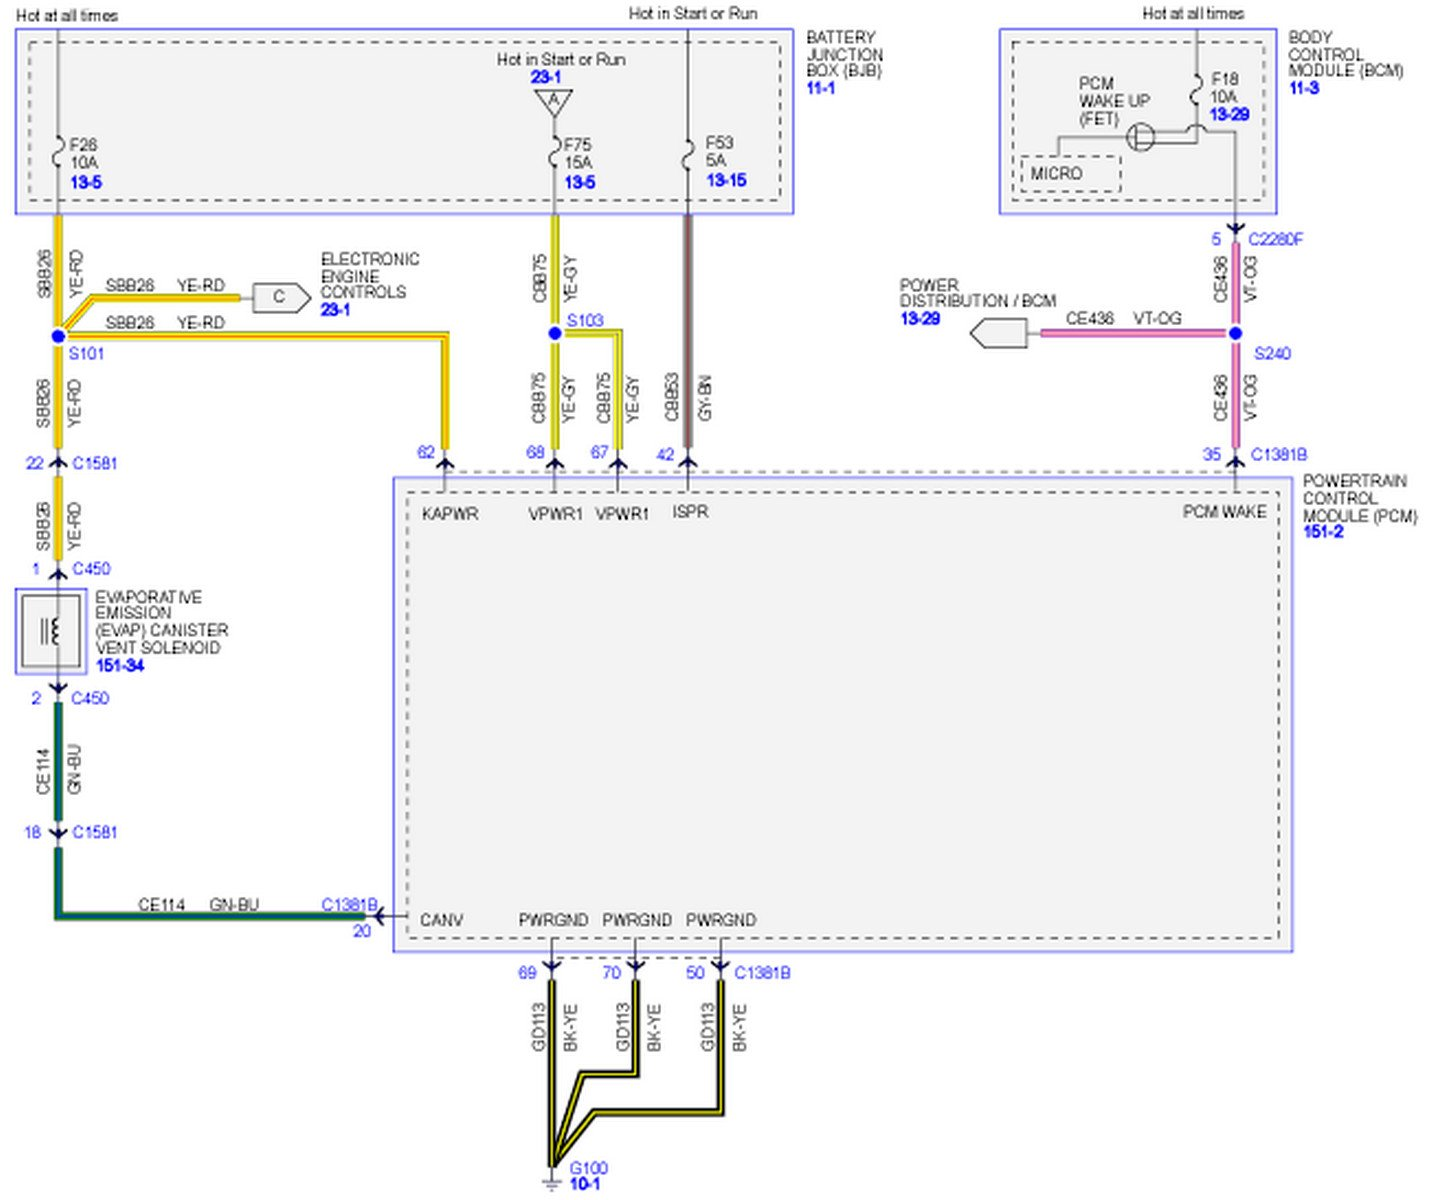 I need a pcm wiring schematic for a 2011 f150 with 6.2 ...